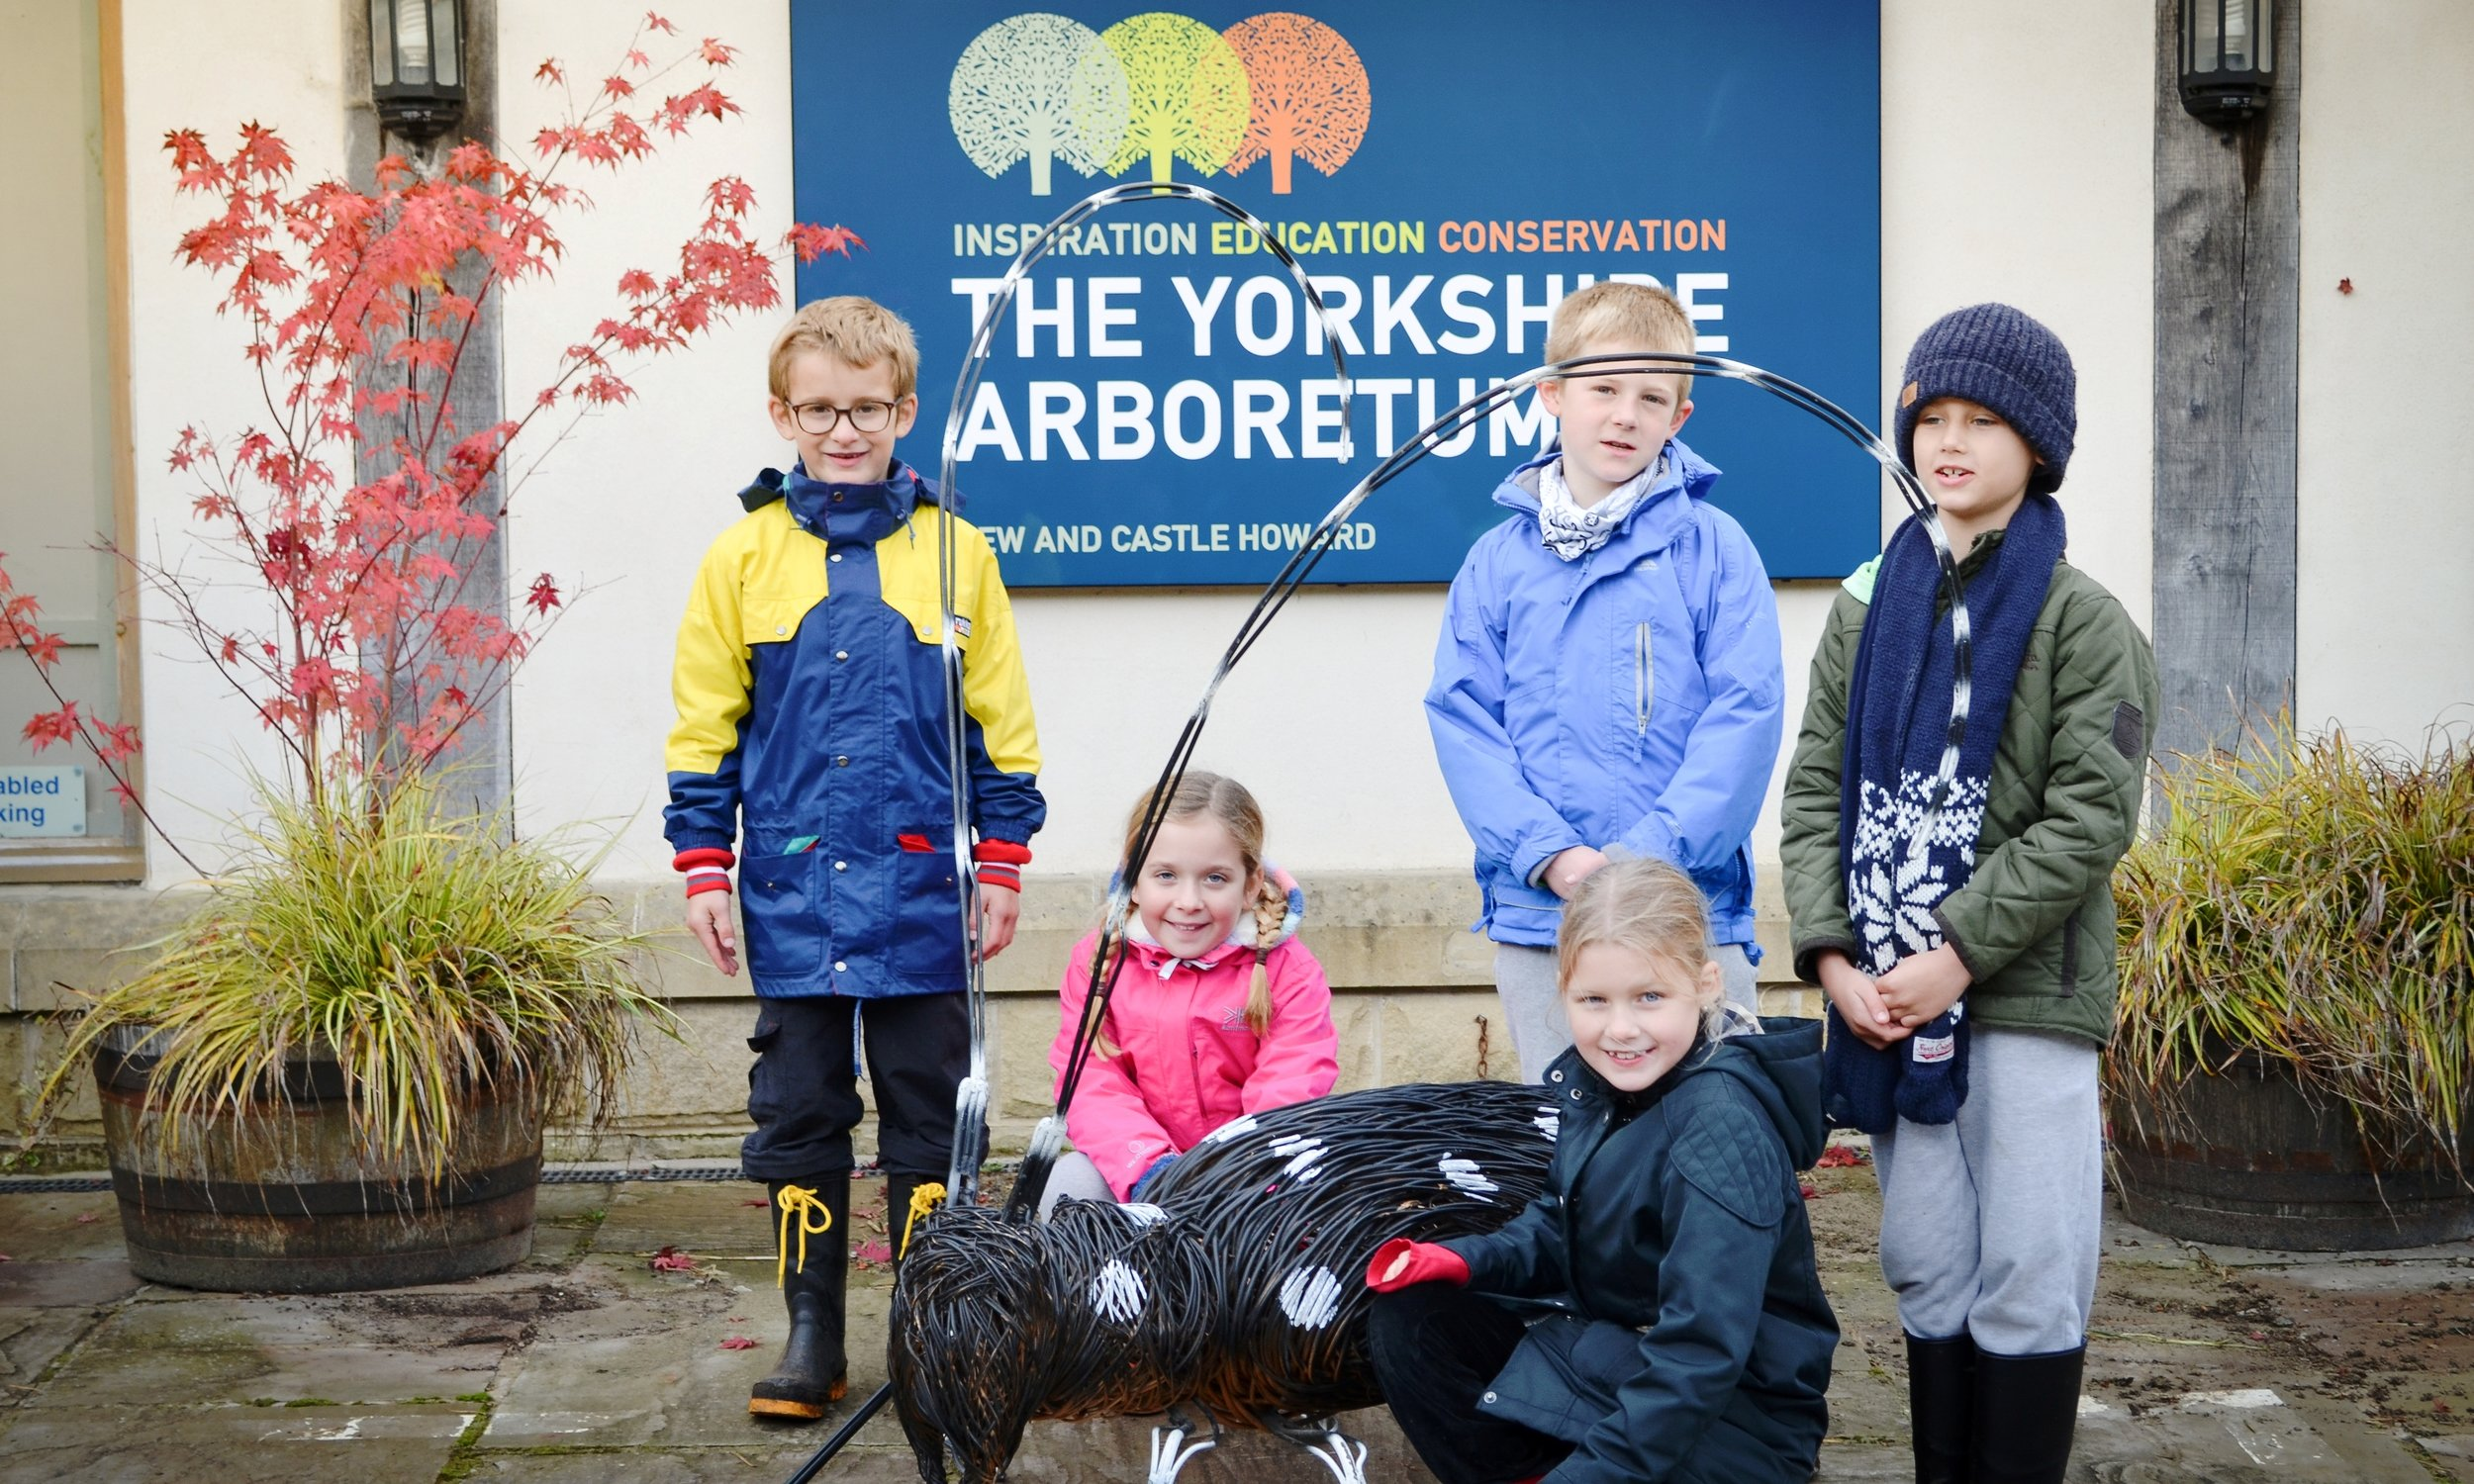 Searching for ugly bugs at the Yorkshire Arboretum this half term - October 2015